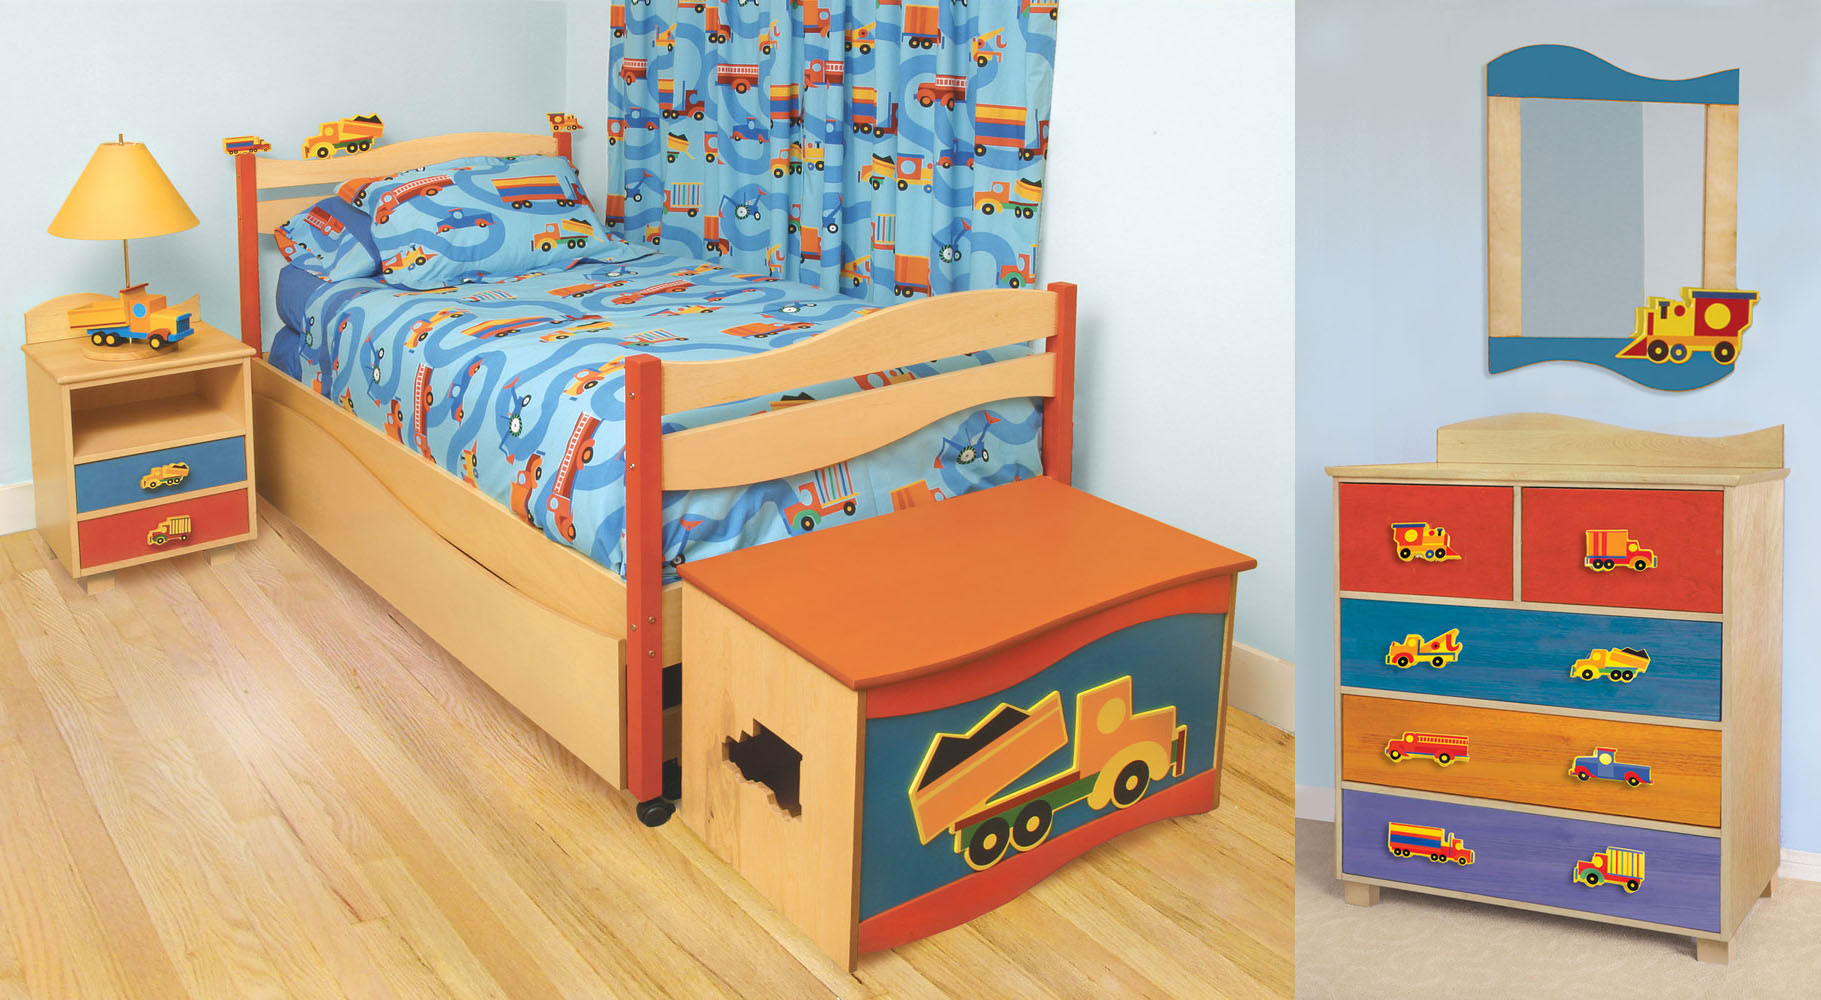 Bed clipart child bed. Free bedroom furniture ayathebook